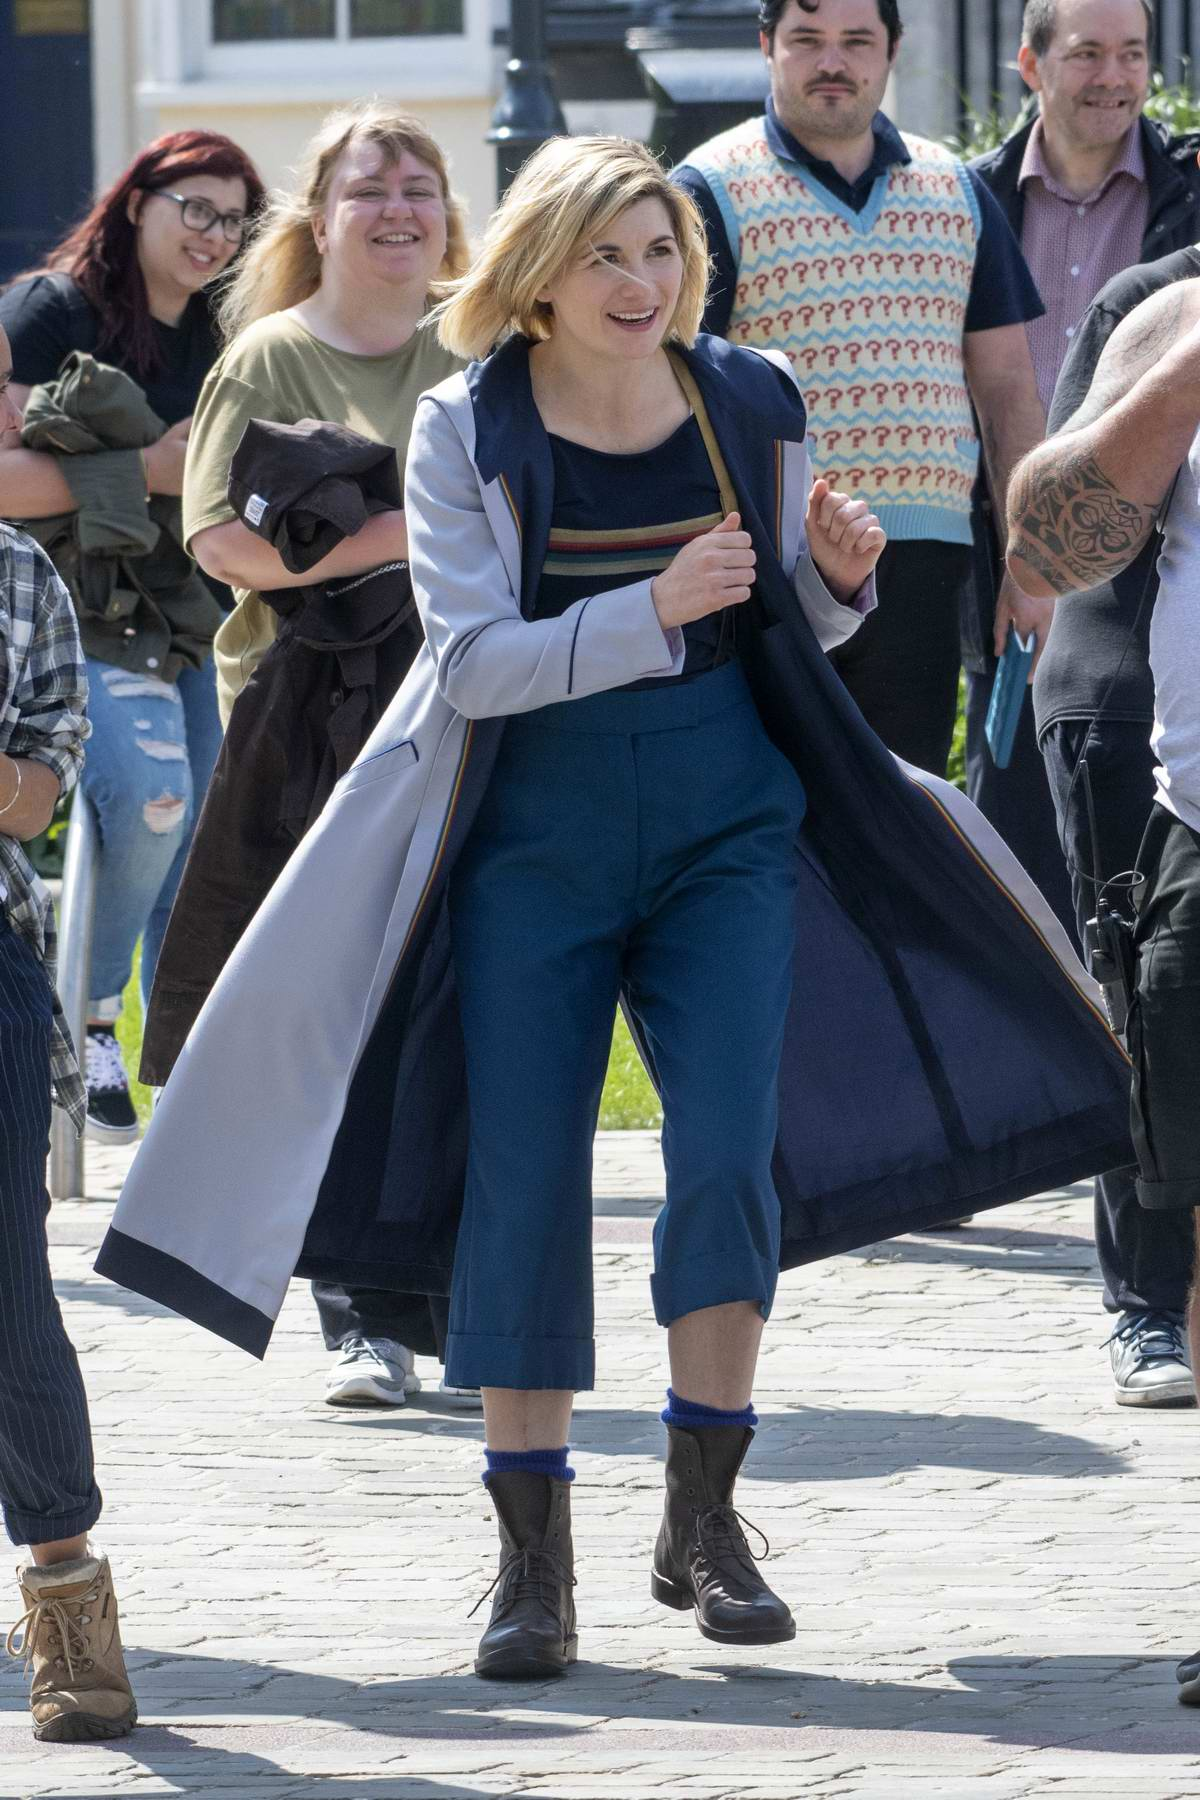 Jodie Whittaker greets her fans while filming for BBC's 'Doctor Who' at Gloucester Cathedral in Gloucester, UK